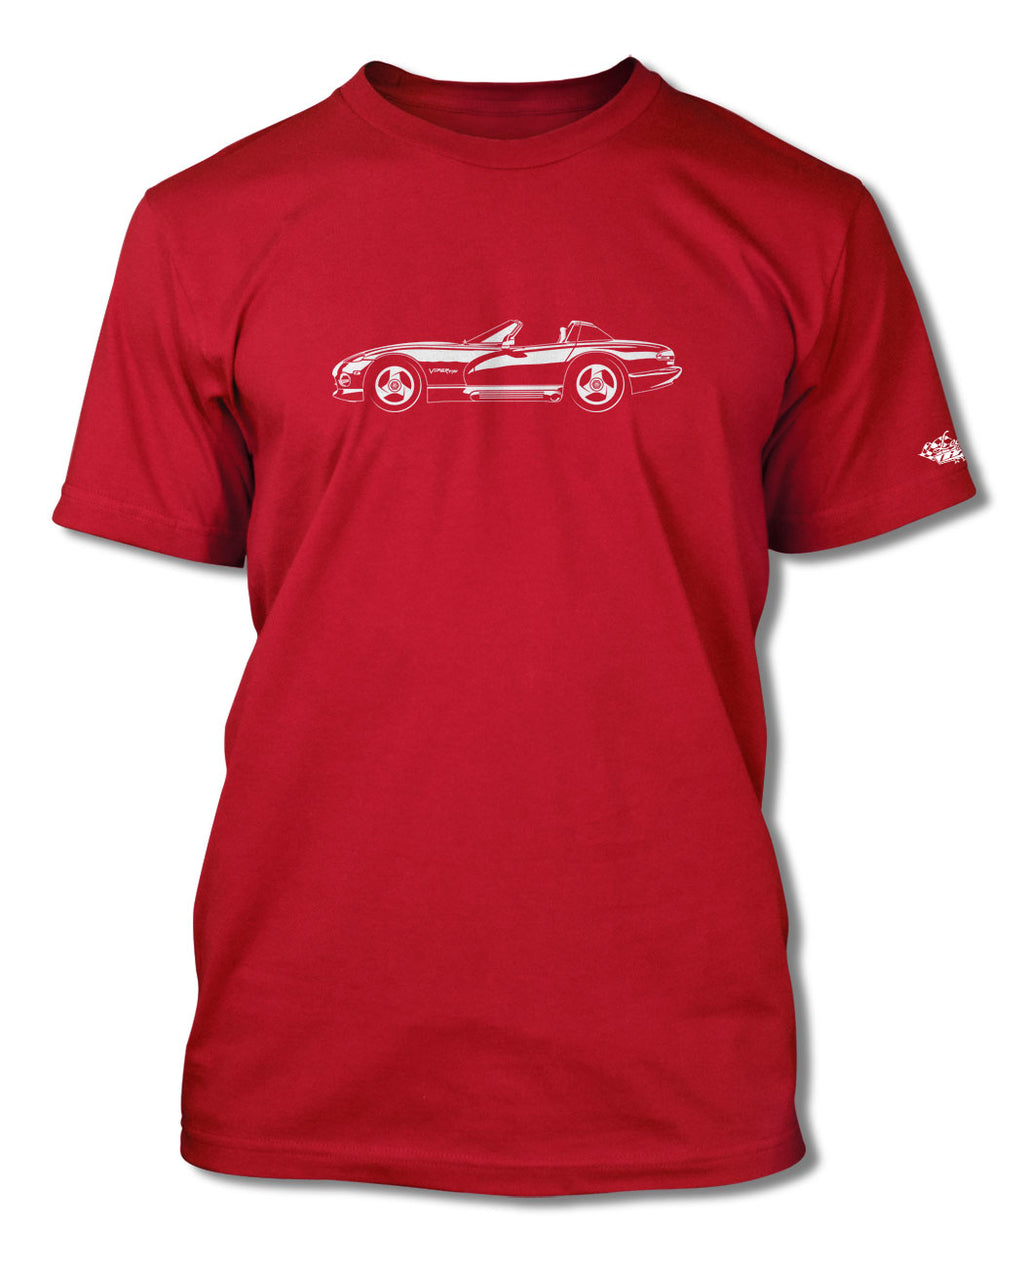 1991 - 1995 Dodge Viper SR1 T-Shirt - Men - Side View